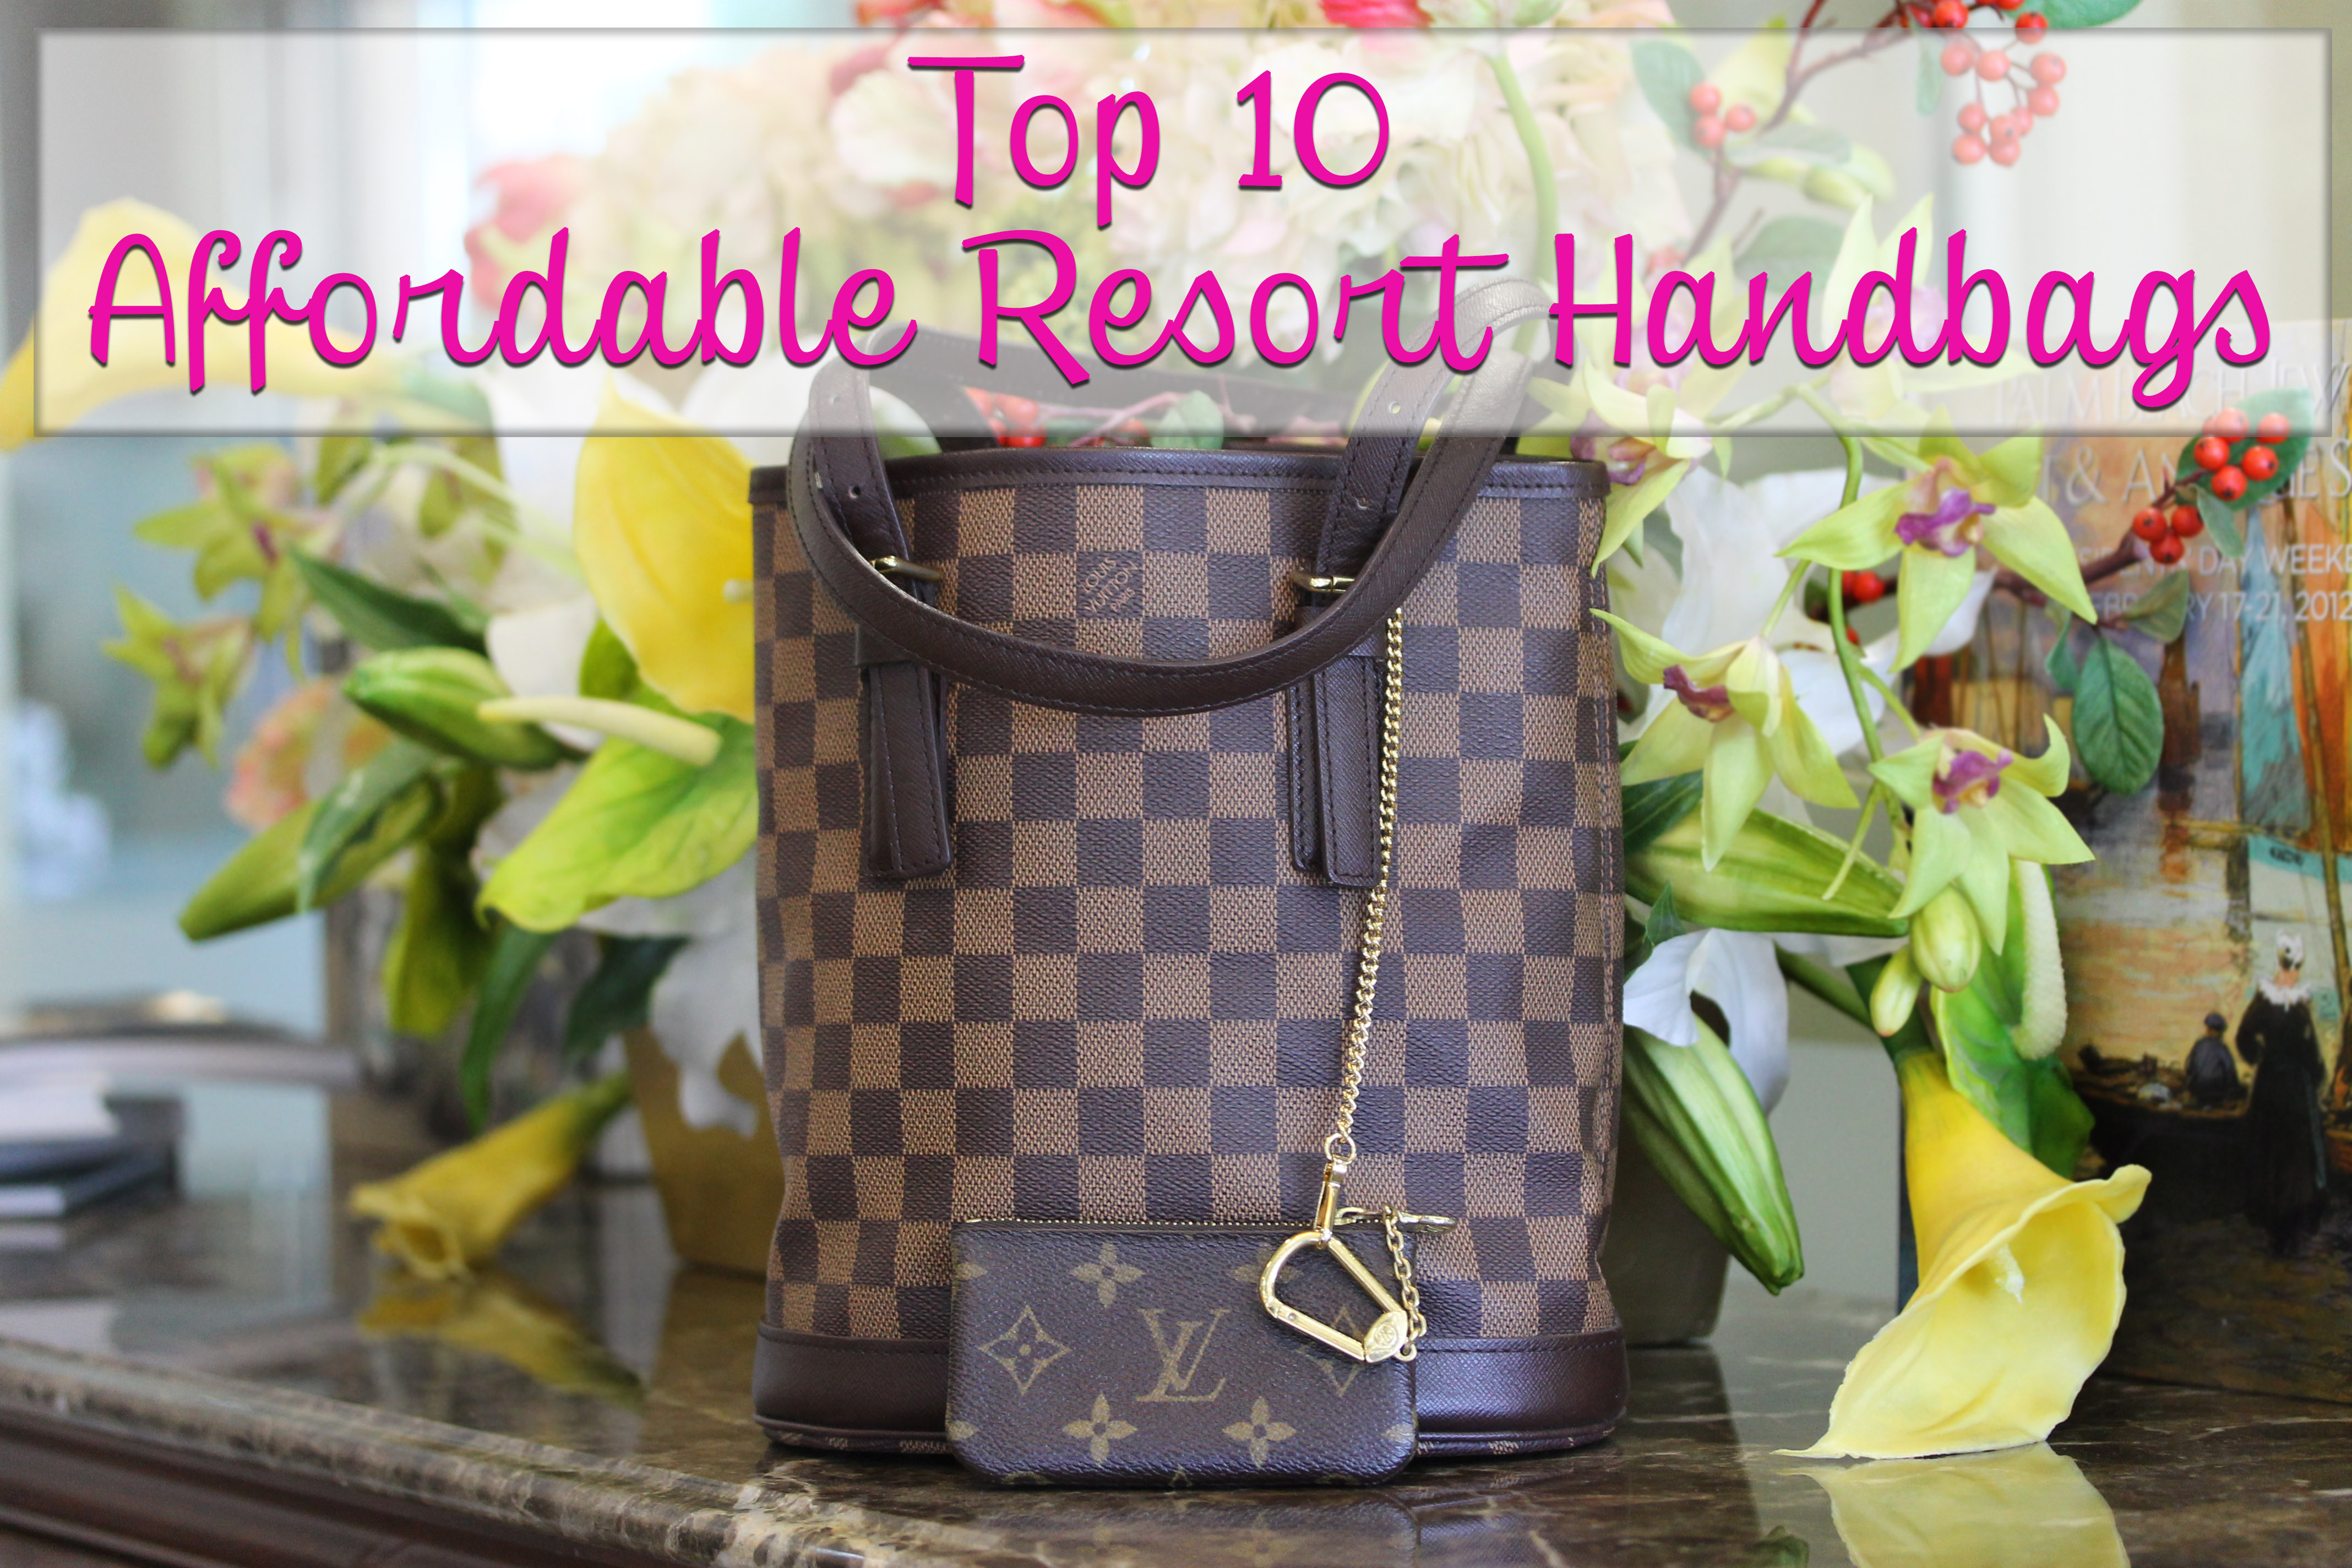 Top Ten Affordable Resort Handbags Boca Raton